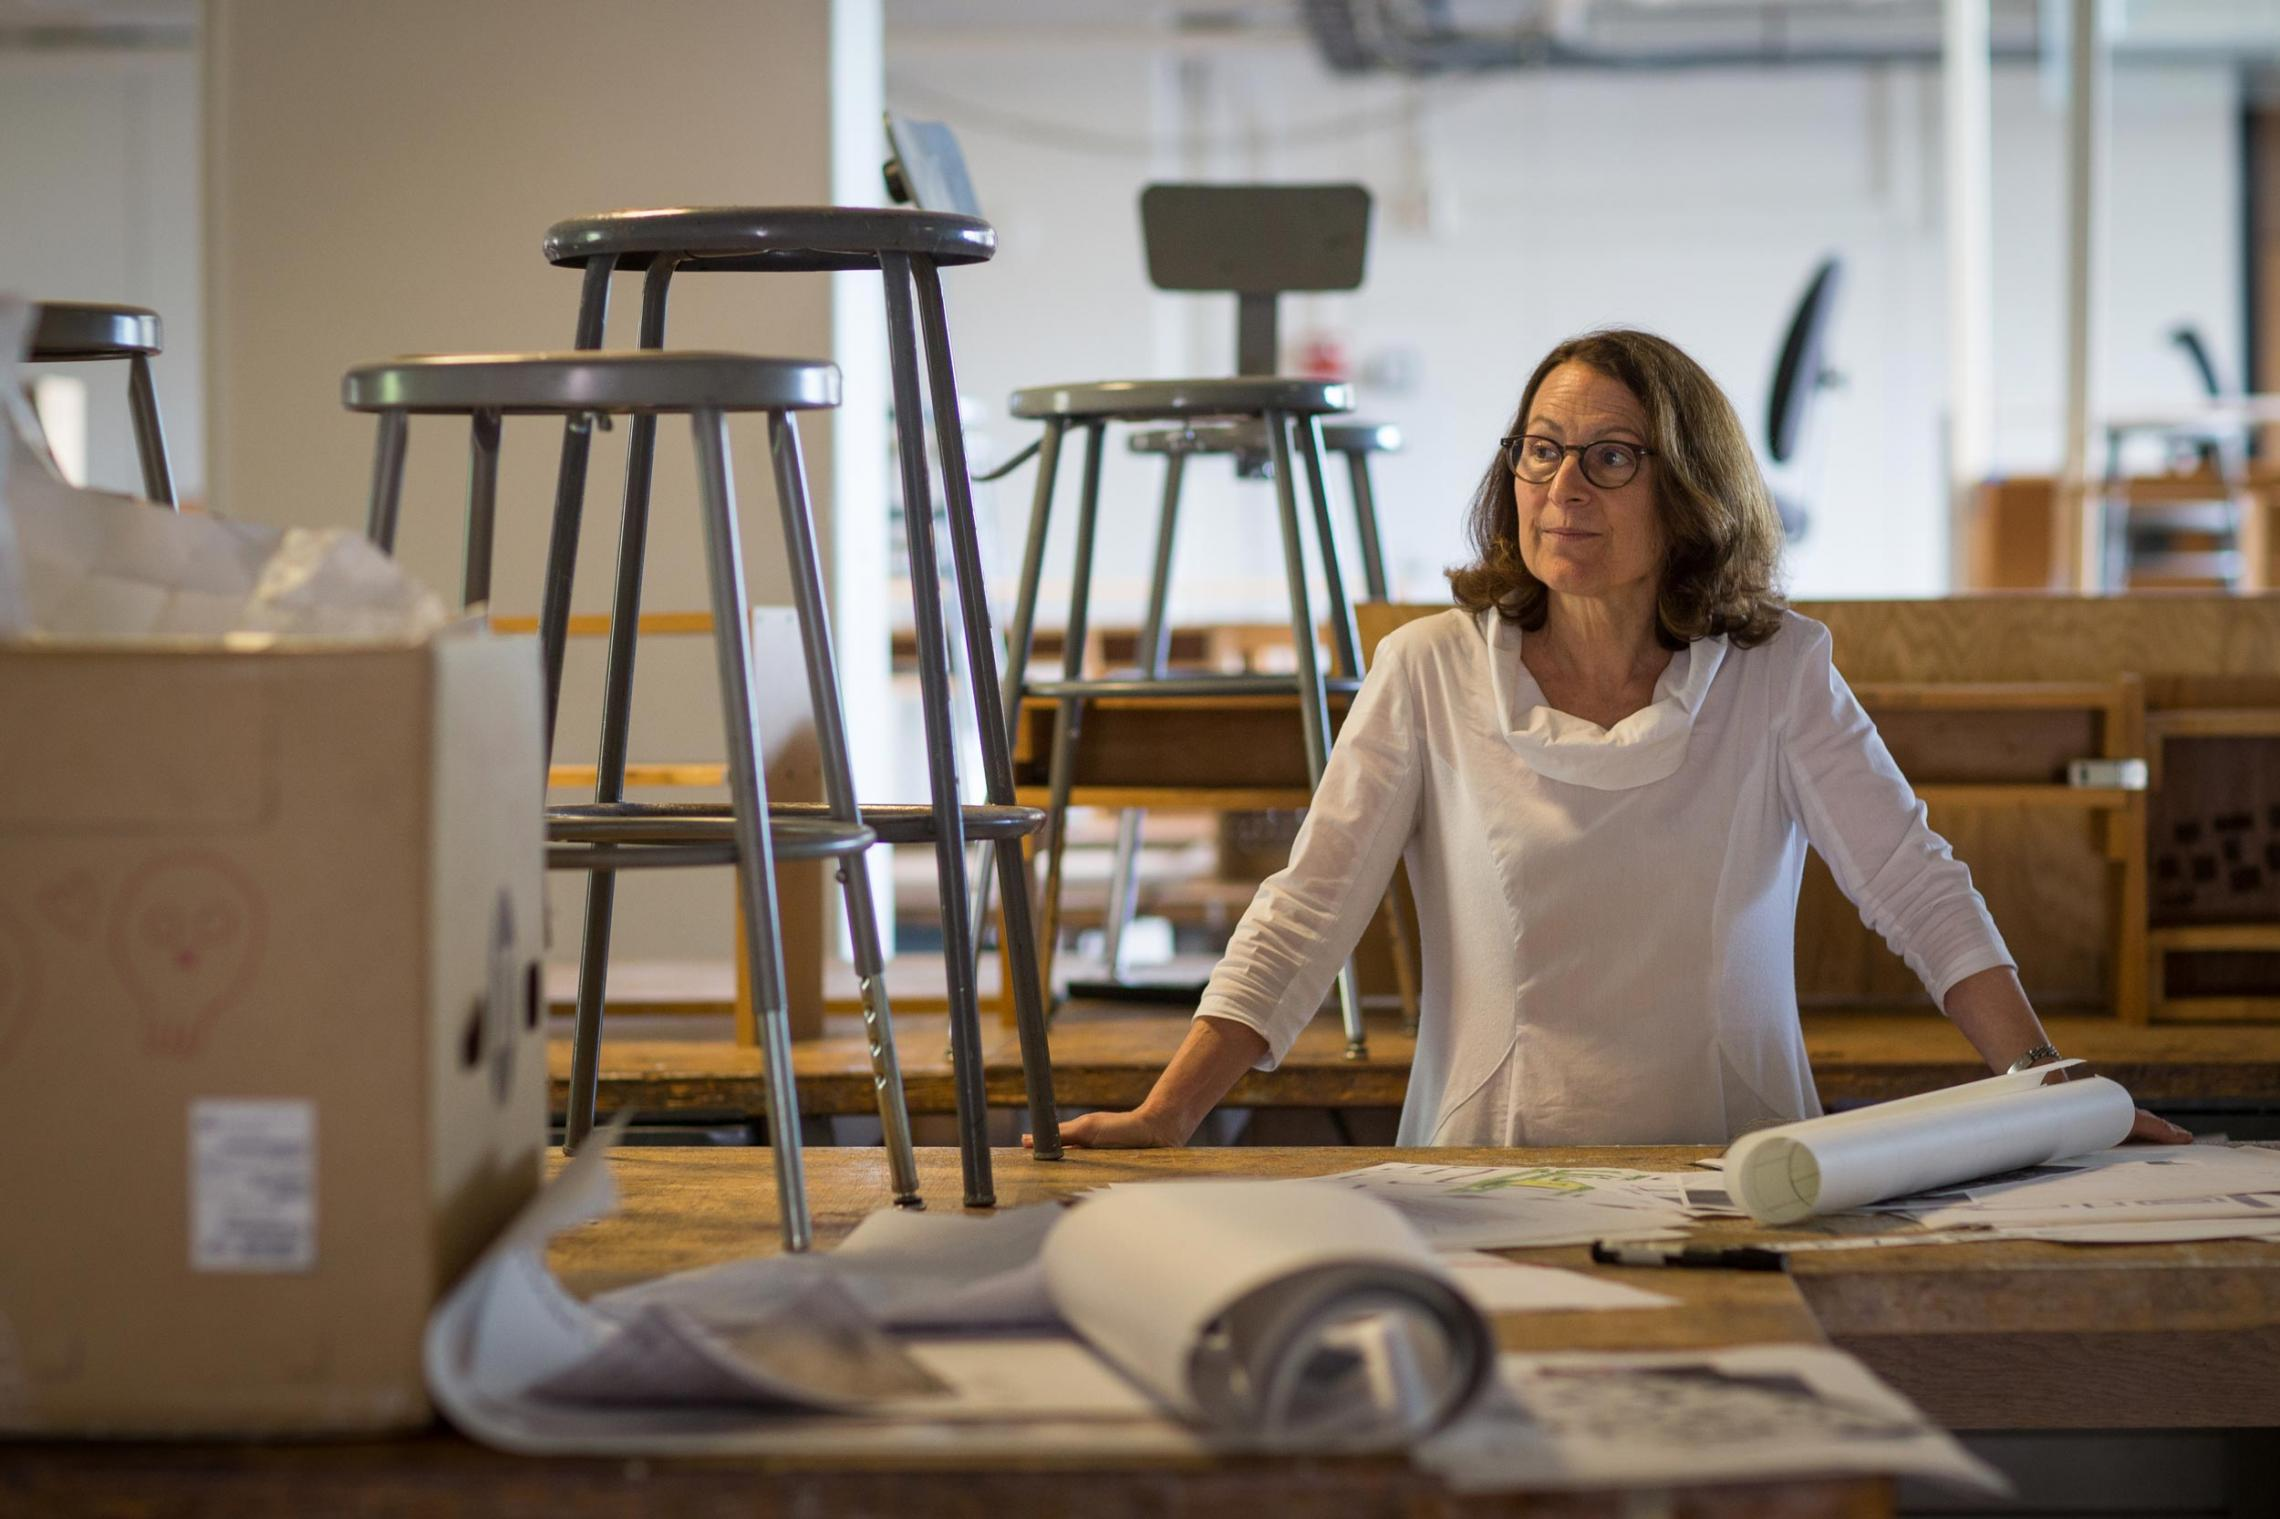 Elizabeth K. Meyer is the Merrill D. Peterson Professor of Landscape Architecture at UVA and founded UVA's Center for Cultural Landscapes.